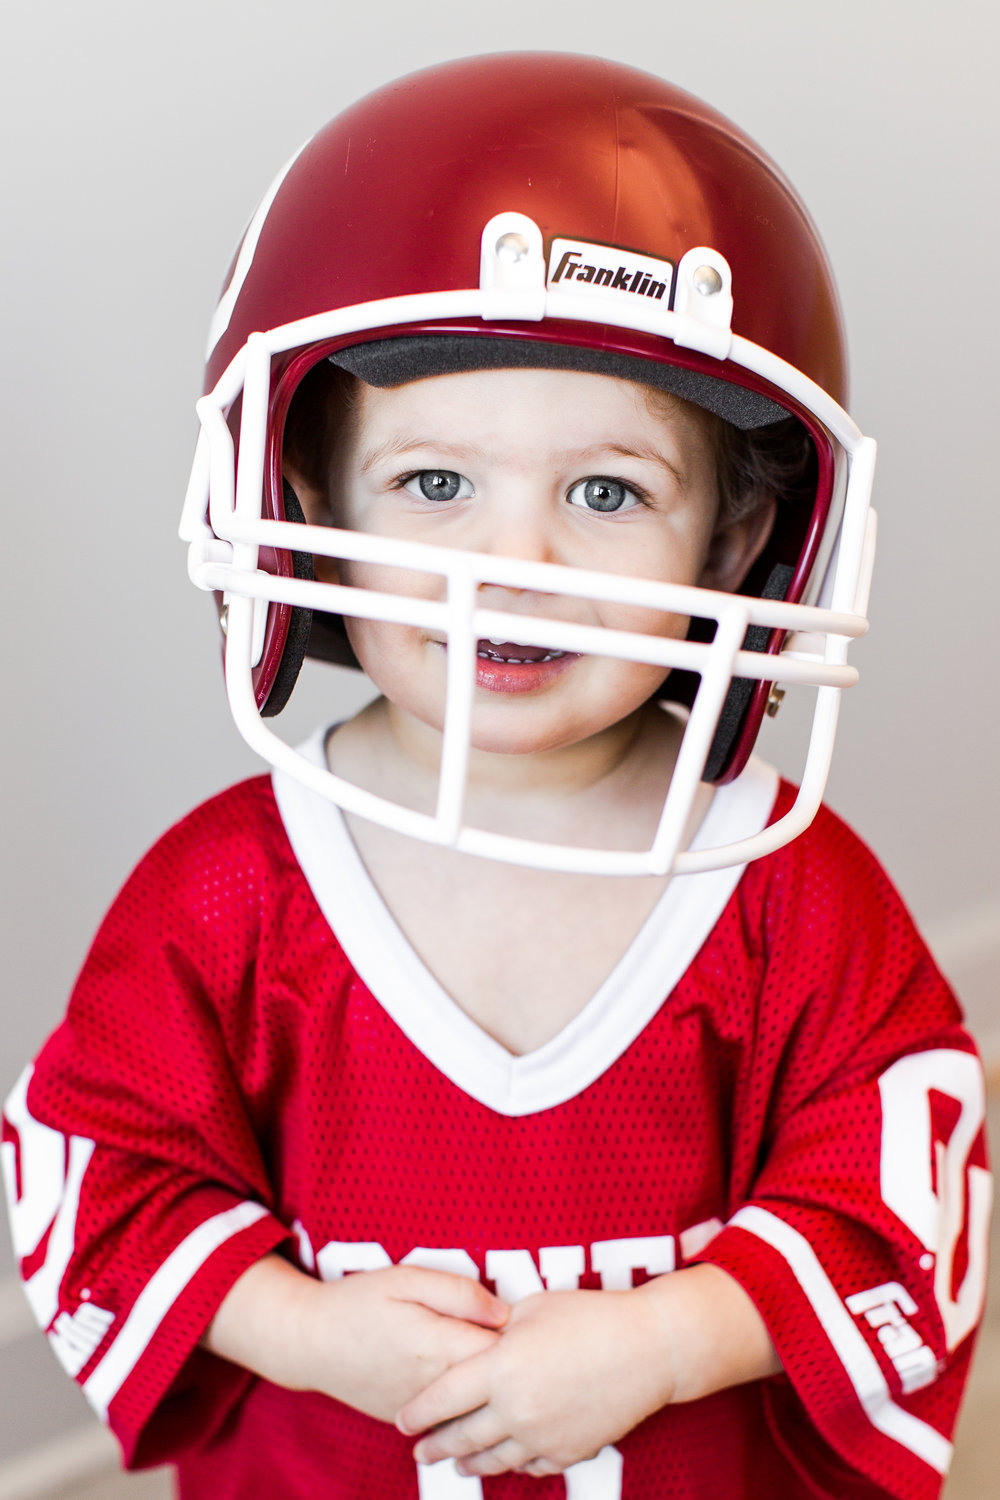 """What's Sam's favorite sport?    """"Sam's favorite sport is football! He's always running around the house yelling """"OU FOOTBALL!"""" """"Touchdown!"""" and """"tackle!"""""""""""